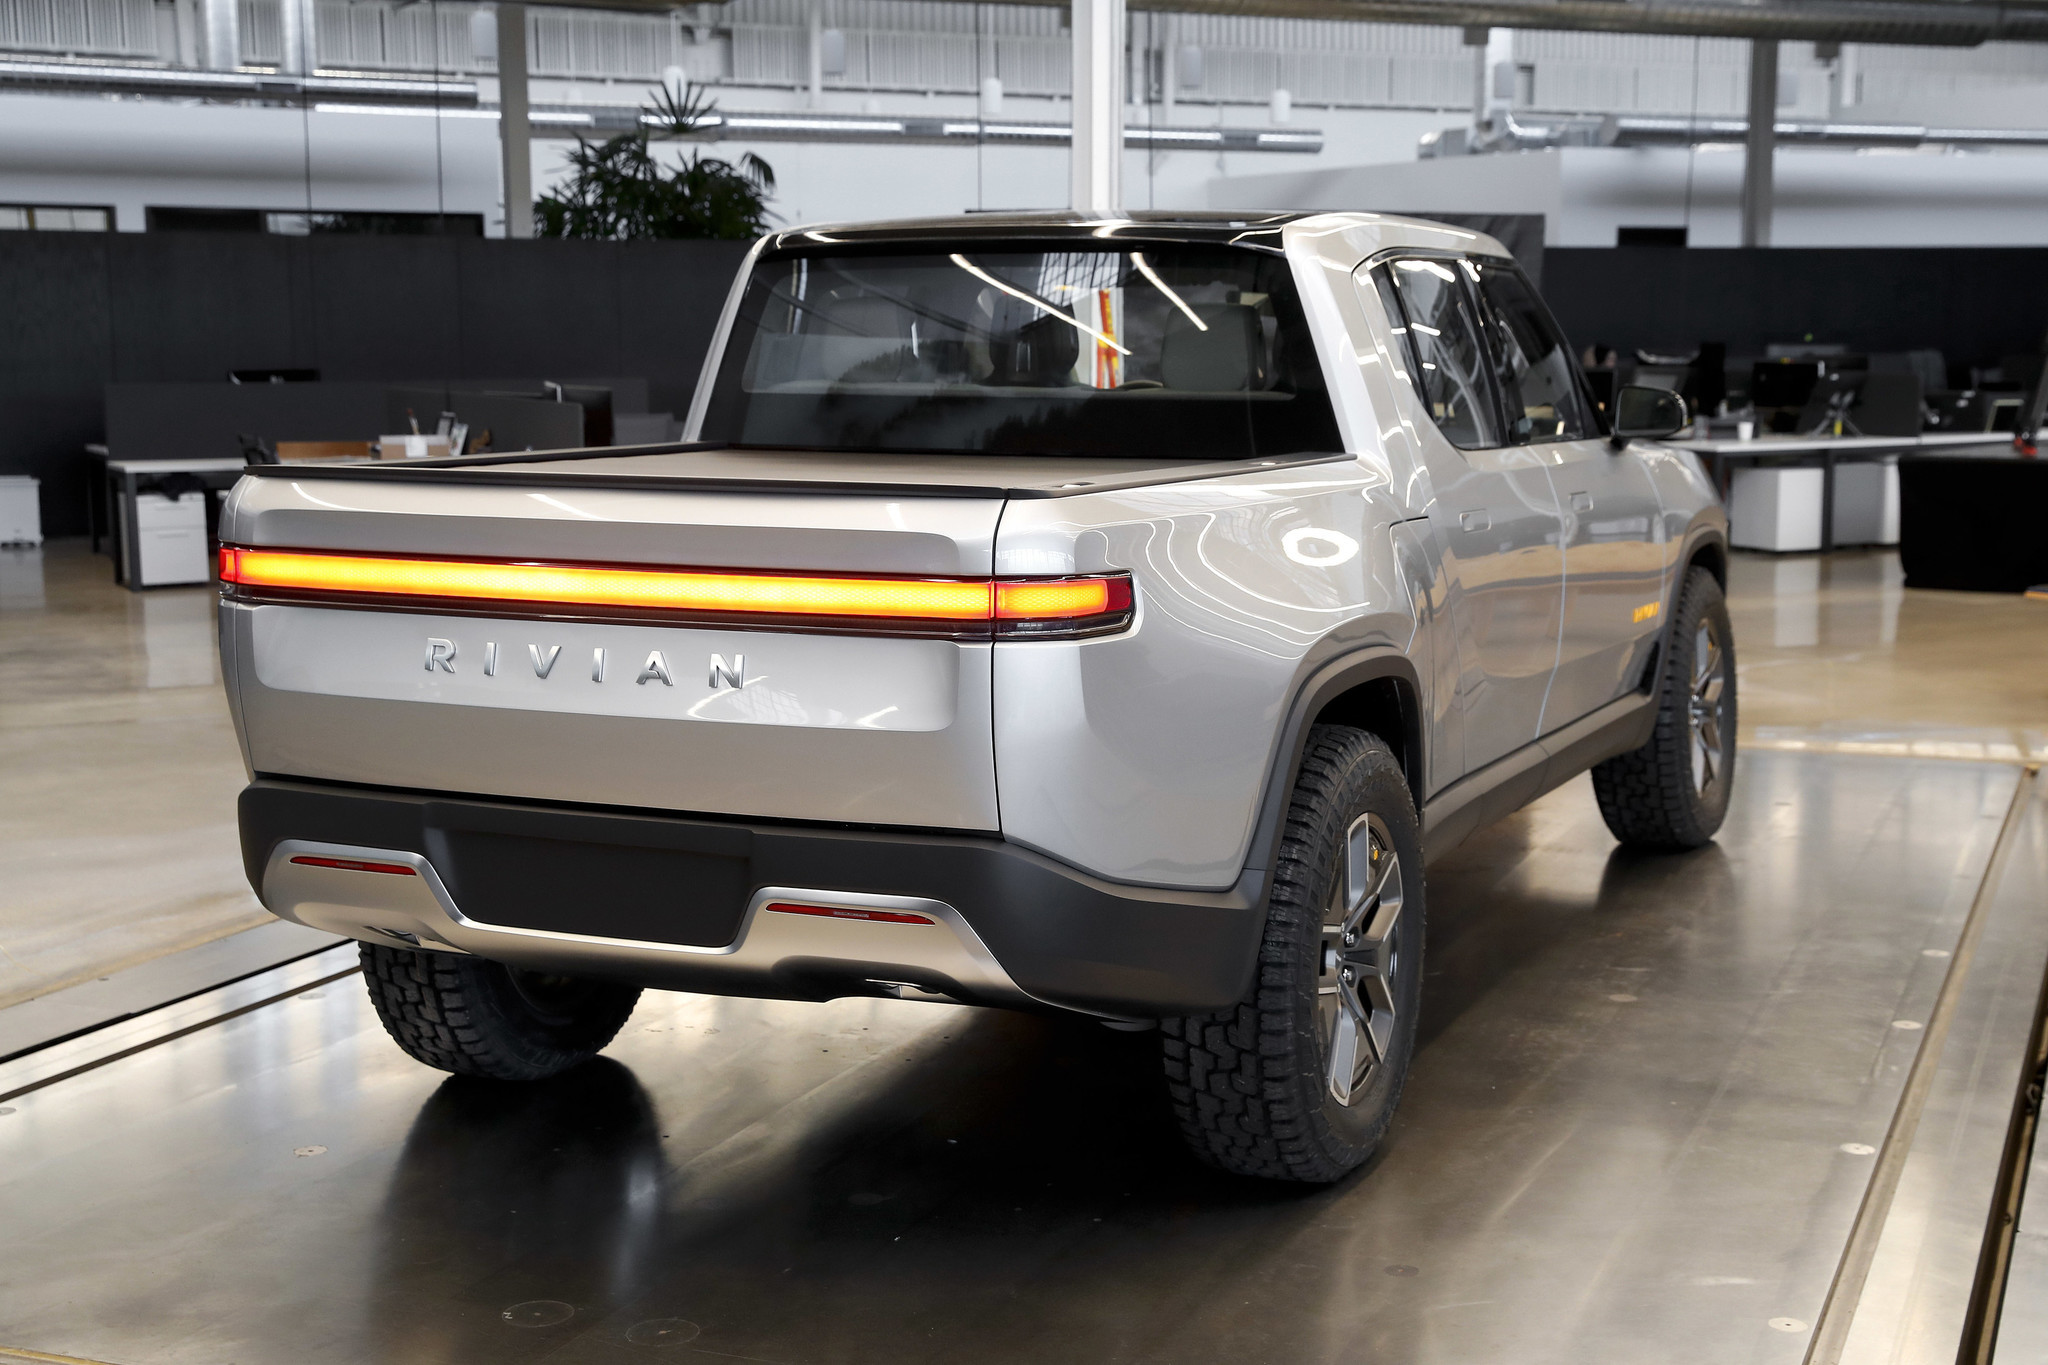 rivian r1t electric pickup truck carroll county times. Black Bedroom Furniture Sets. Home Design Ideas